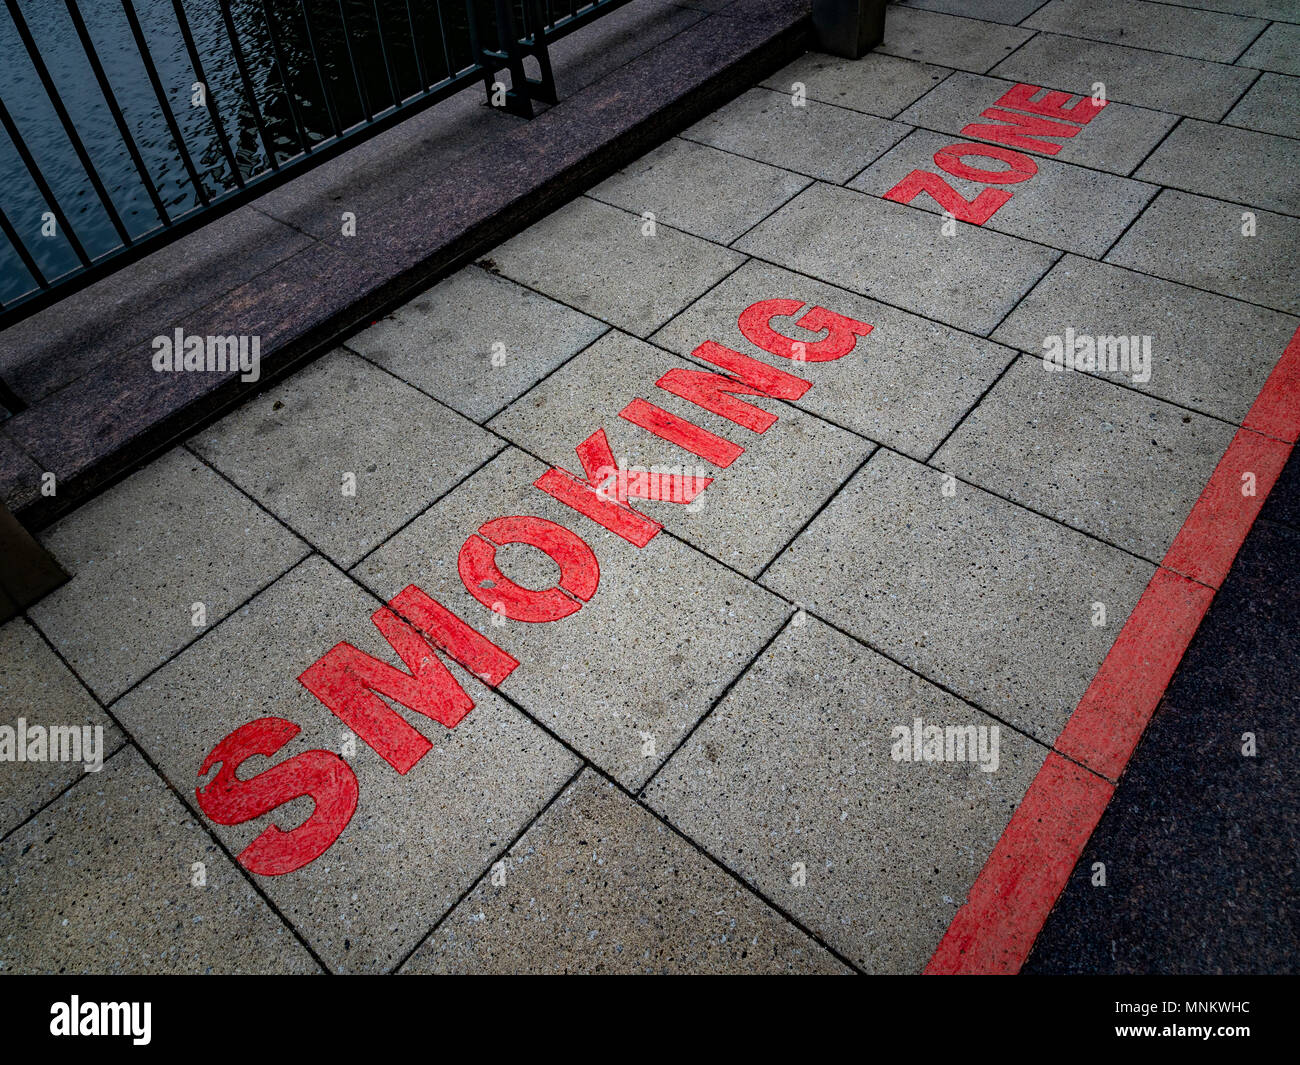 Smoking Zone sign in red lettering on pavement, London, UK. - Stock Image